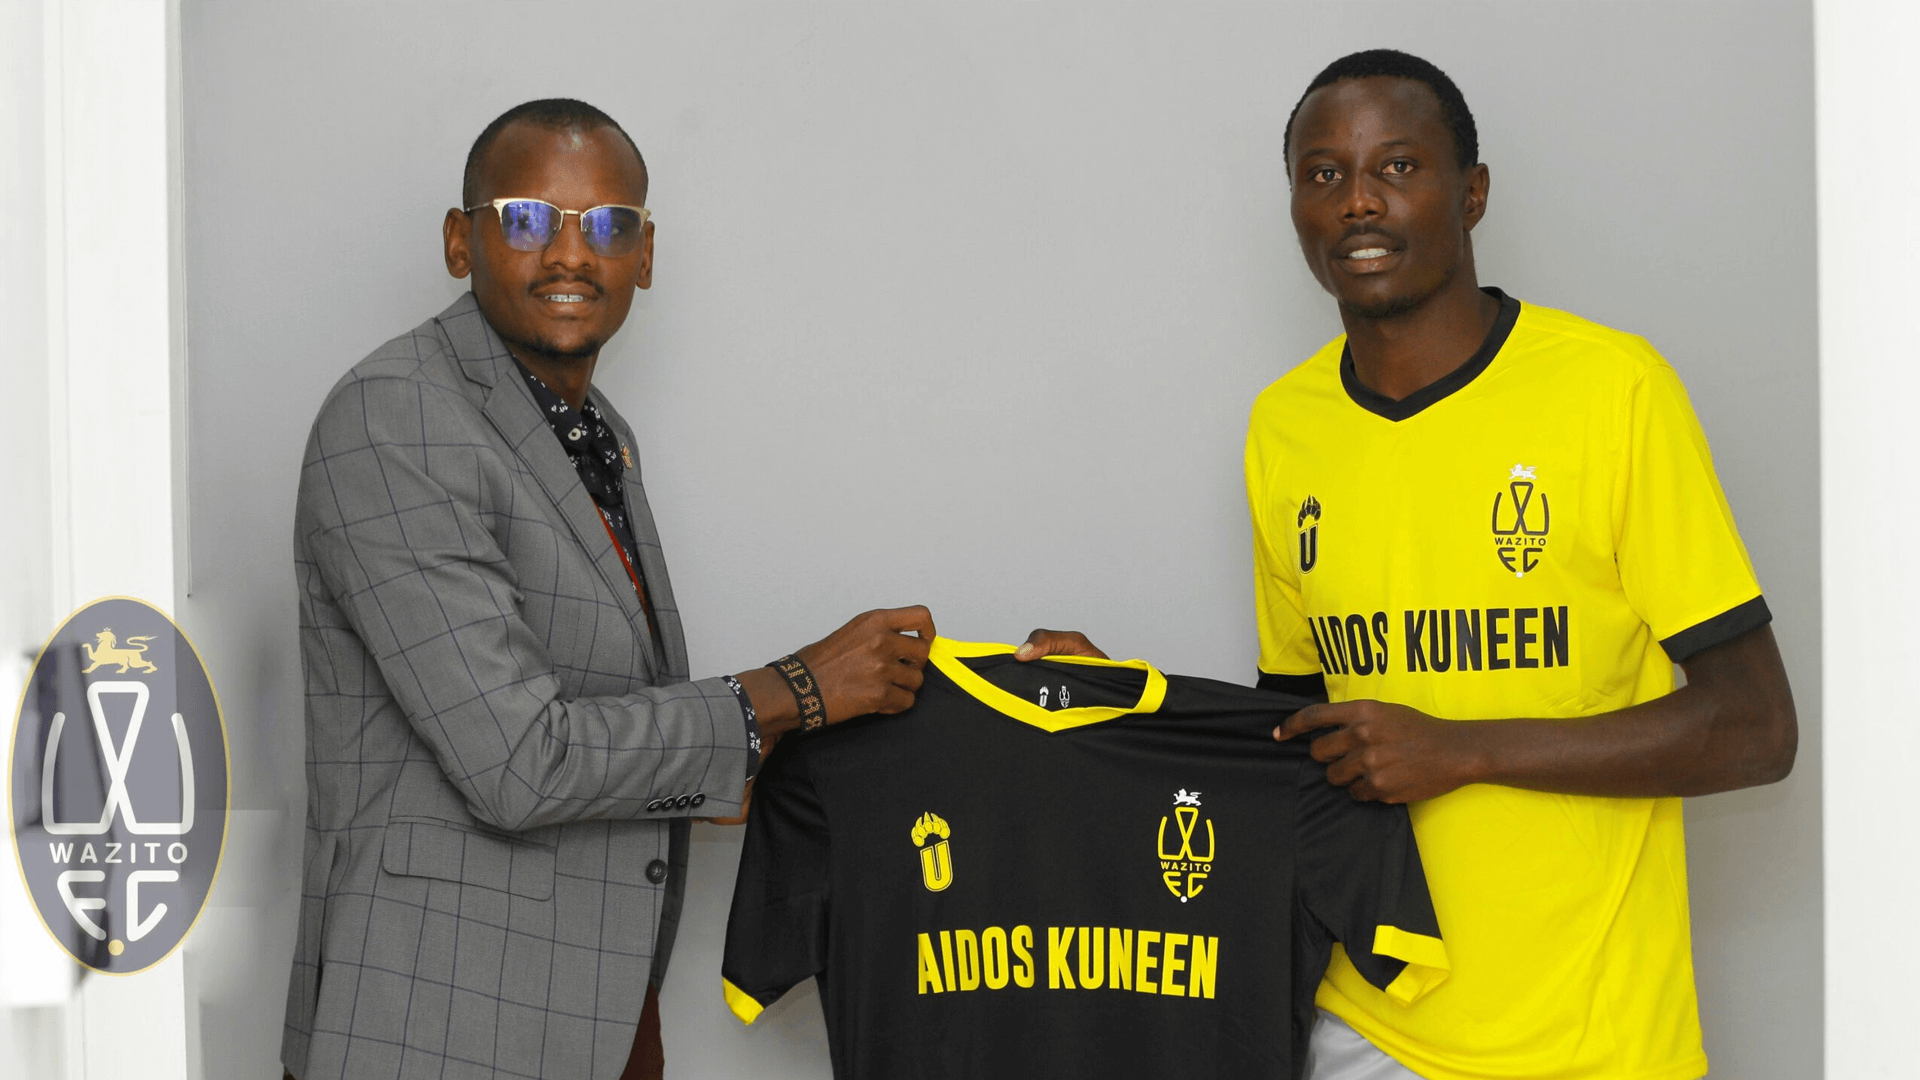 Official: Wazito signs trio